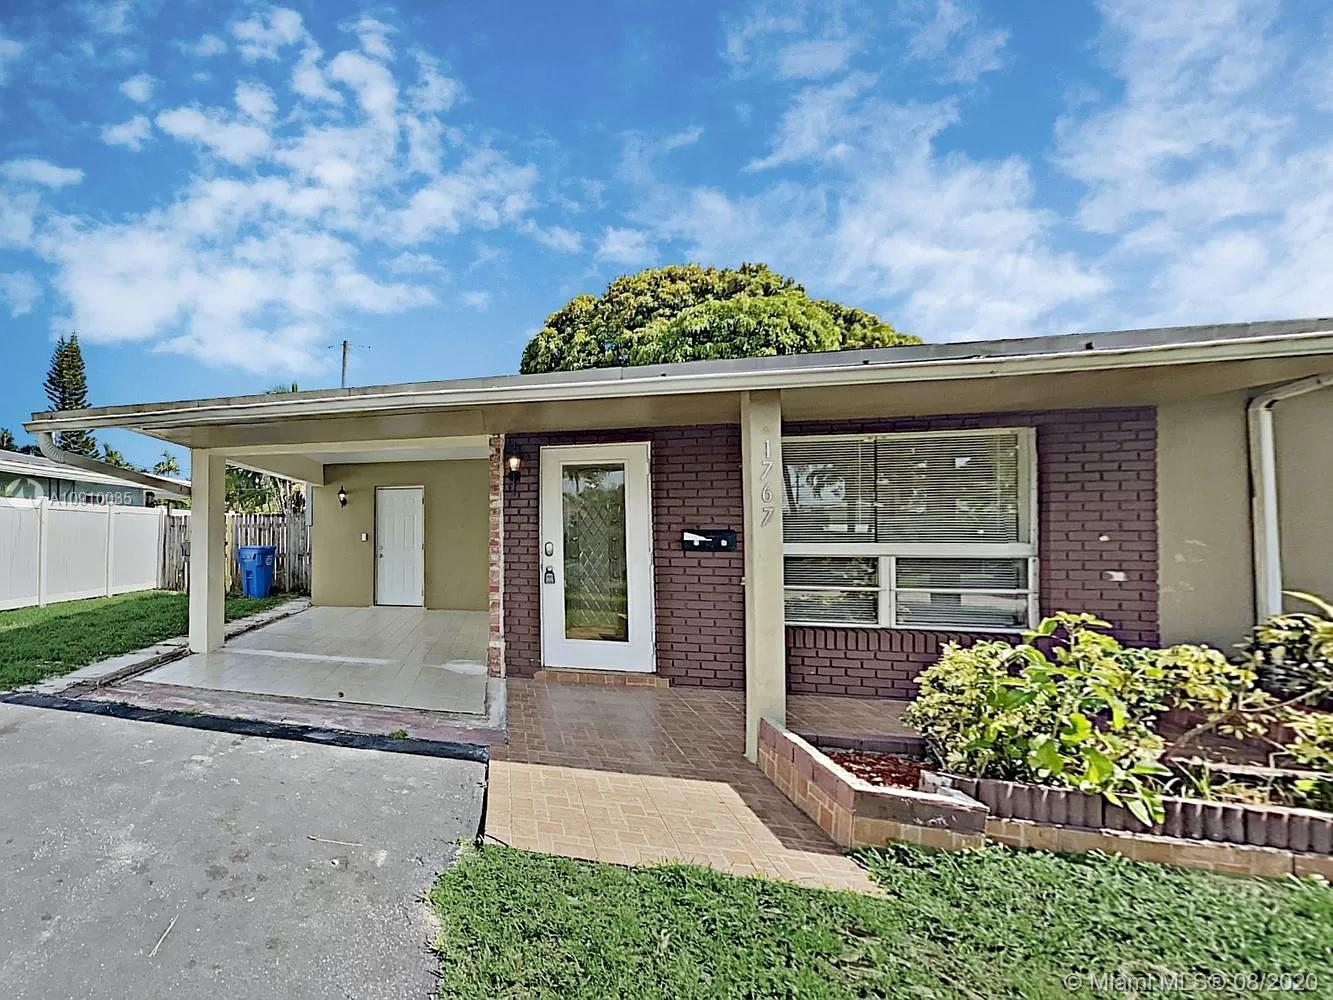 Charming 3 Bedroom 1.5 Bathroom home with fenced in yard. The property features separate living, dining, family & office area, updated kitchen with snack bar, updated bathrooms, tile & vinyl floors throughout, large bedrooms, laundry room & carport. Nice, clean, priced to sell & easy to show.